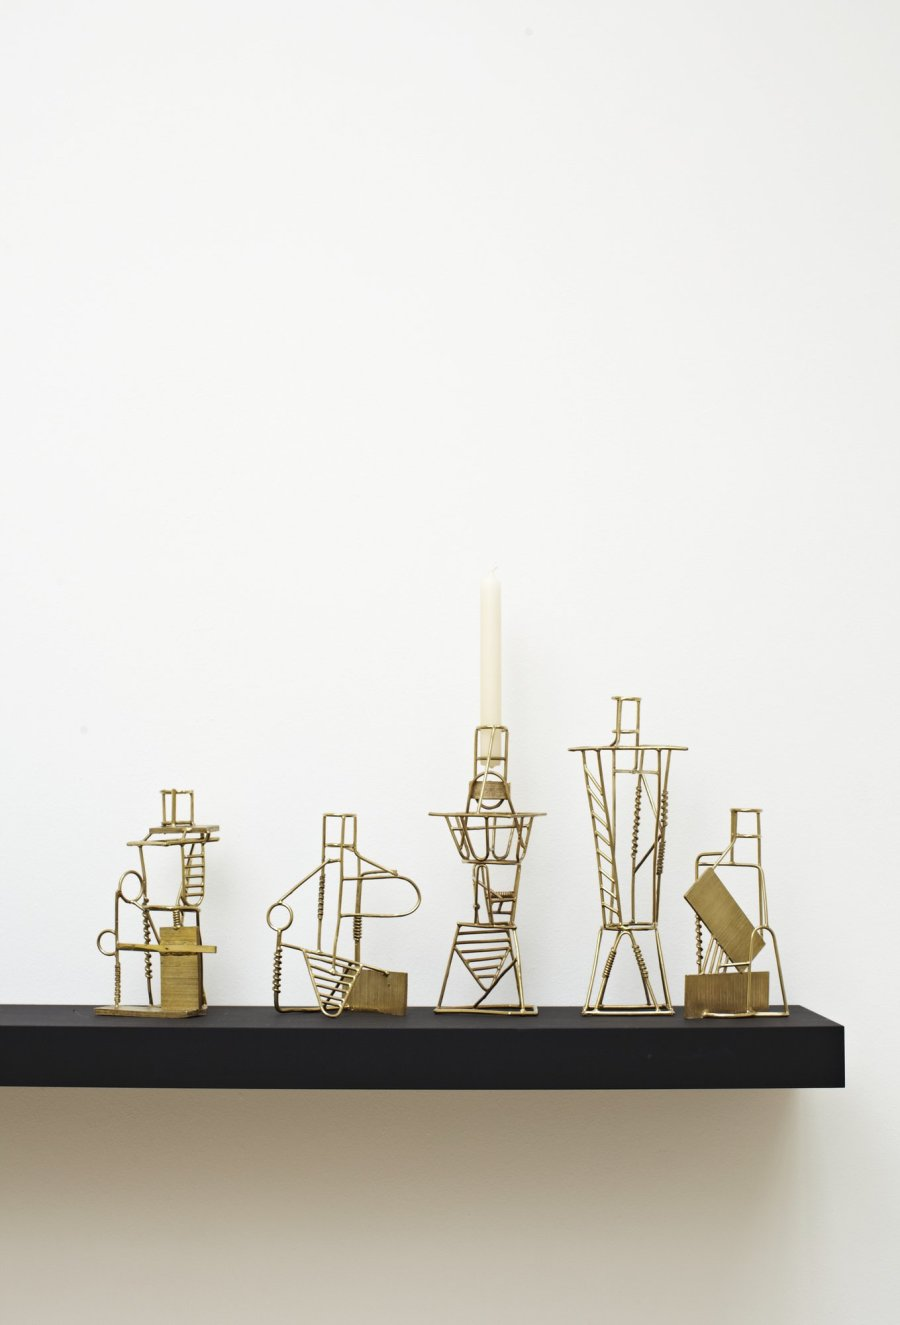 <p><strong>Fabien Cappello</strong>, Drawn Candlesticks, 2012</p><p>Lost-wax method cast brass</p><p>Max. 3o H cms</p><p>5-piece set, series of 8</p><p>Photography by Petr Krejci</p>